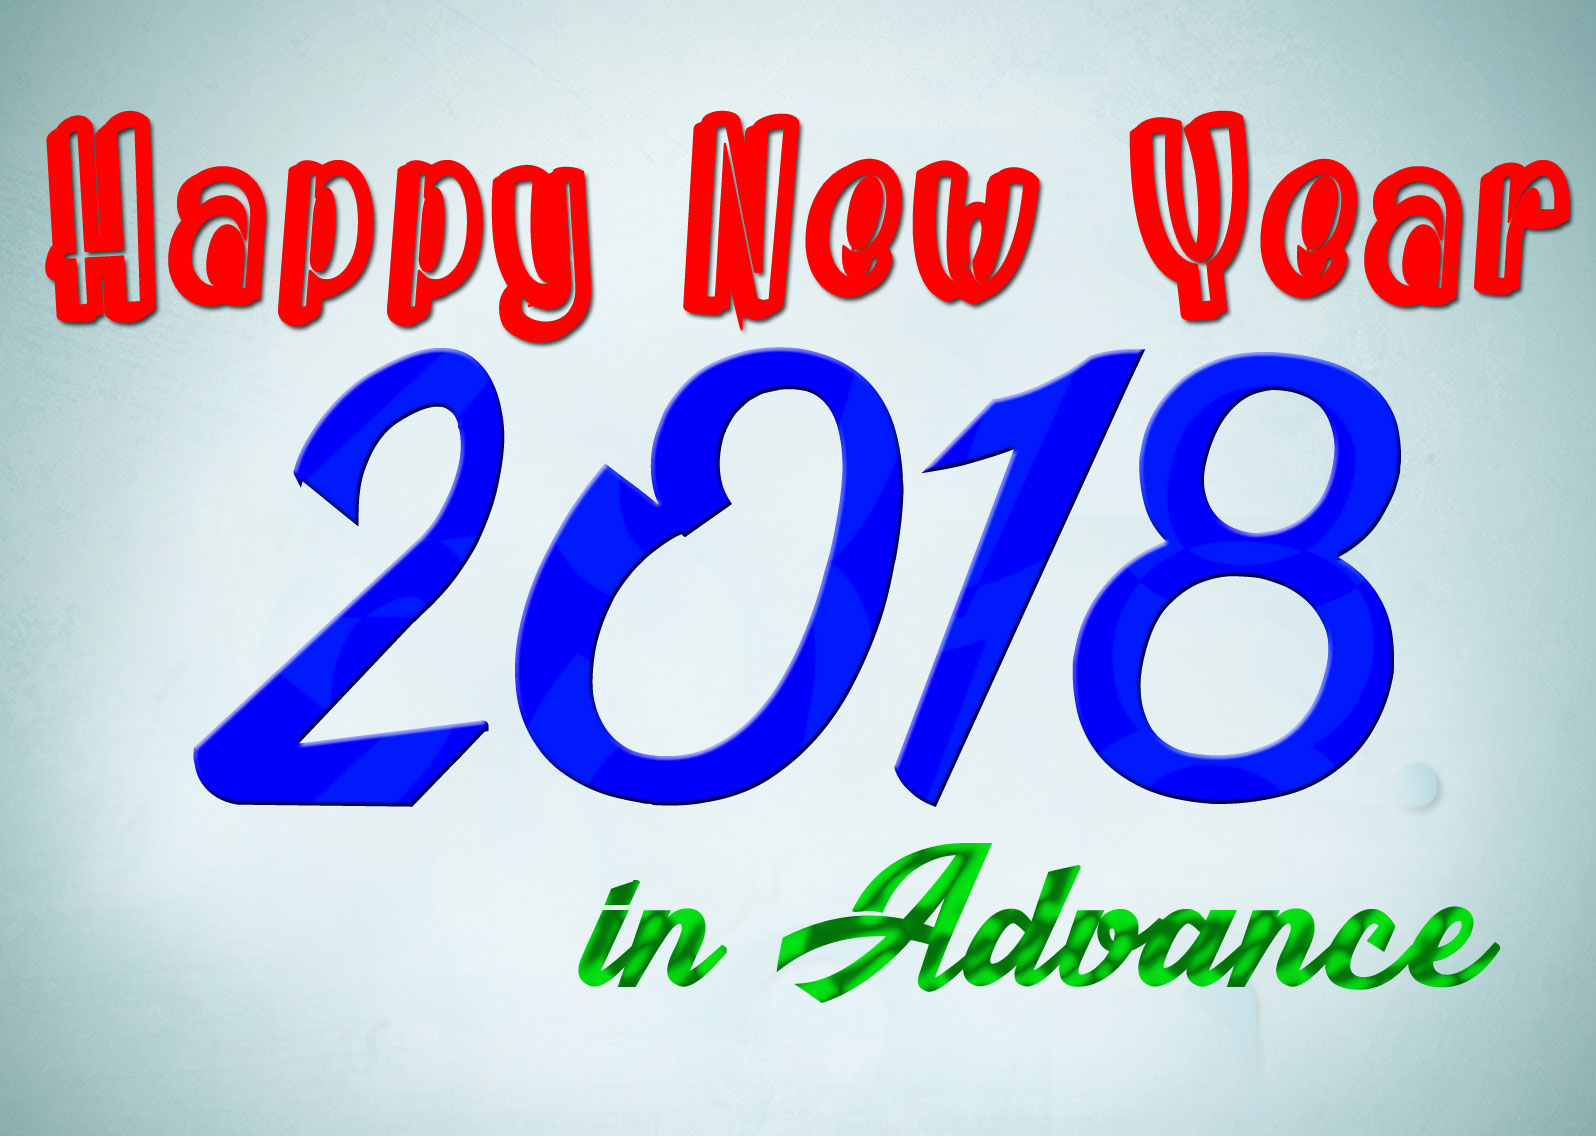 Superior New Year 2018 Advance Wishes Image, WhatsApp Status, DP Collection